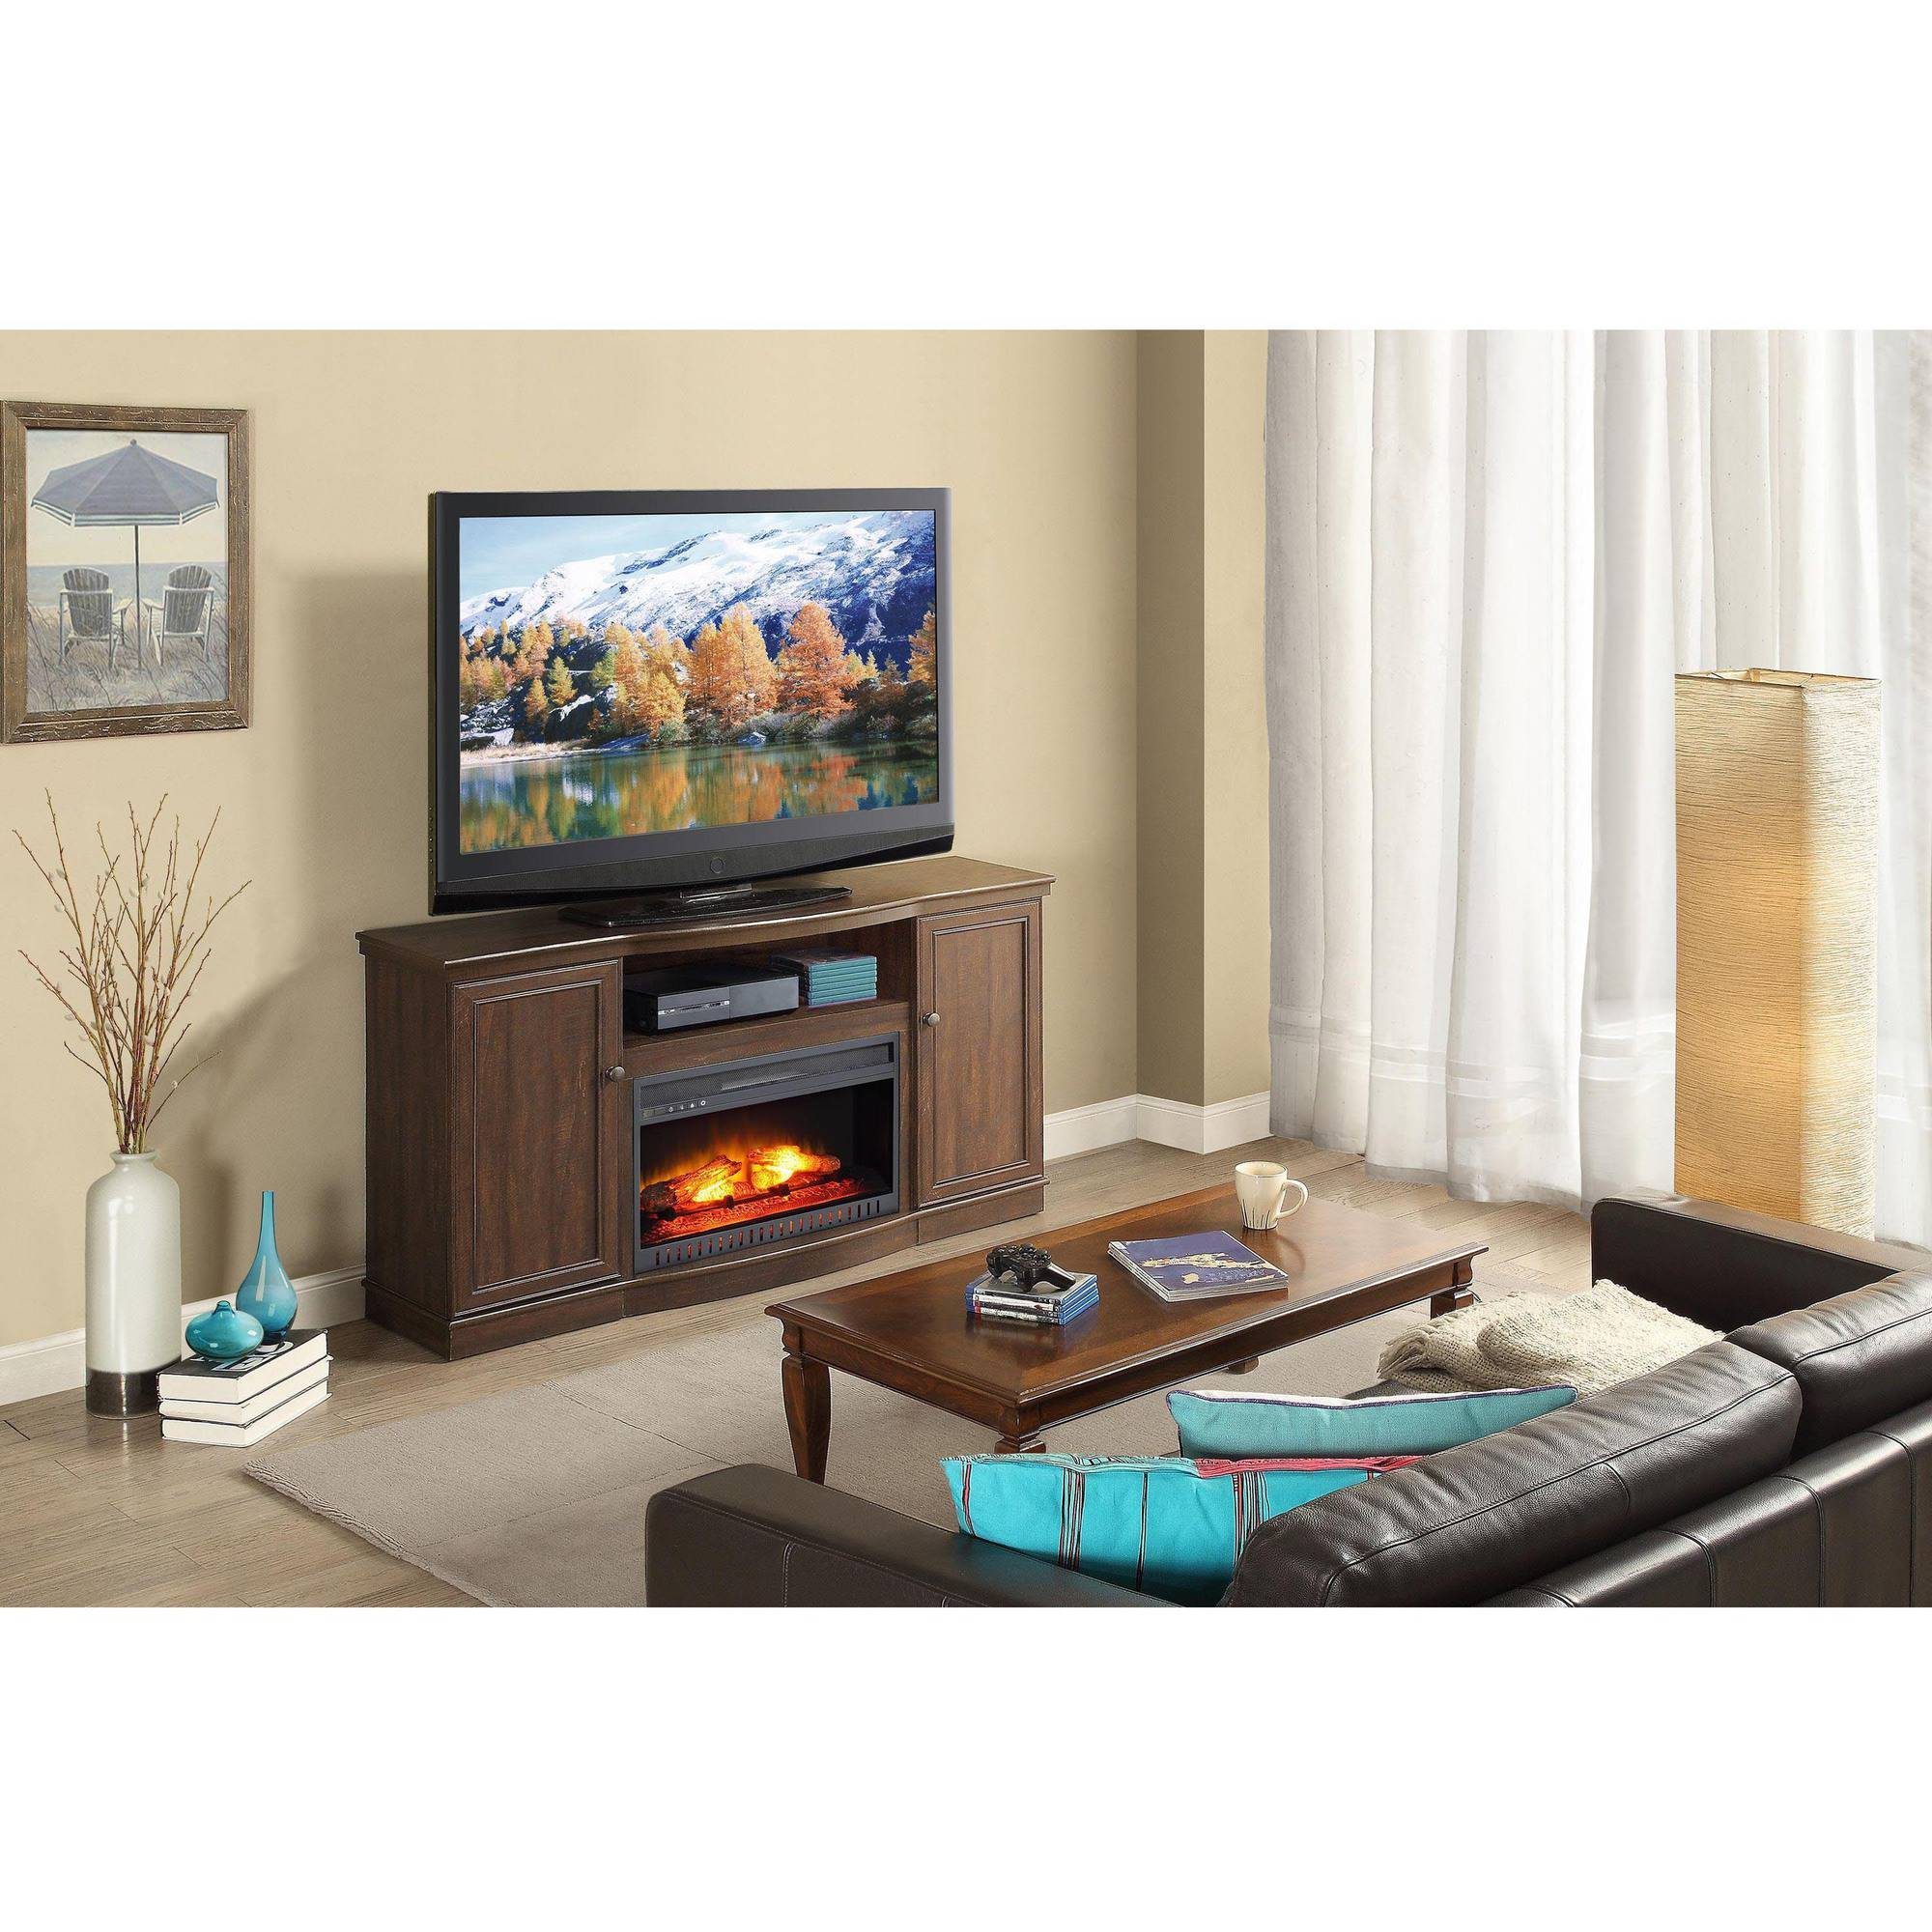 "Whalen Media Fireplace for TVs up to 65"", Rustic Brown"